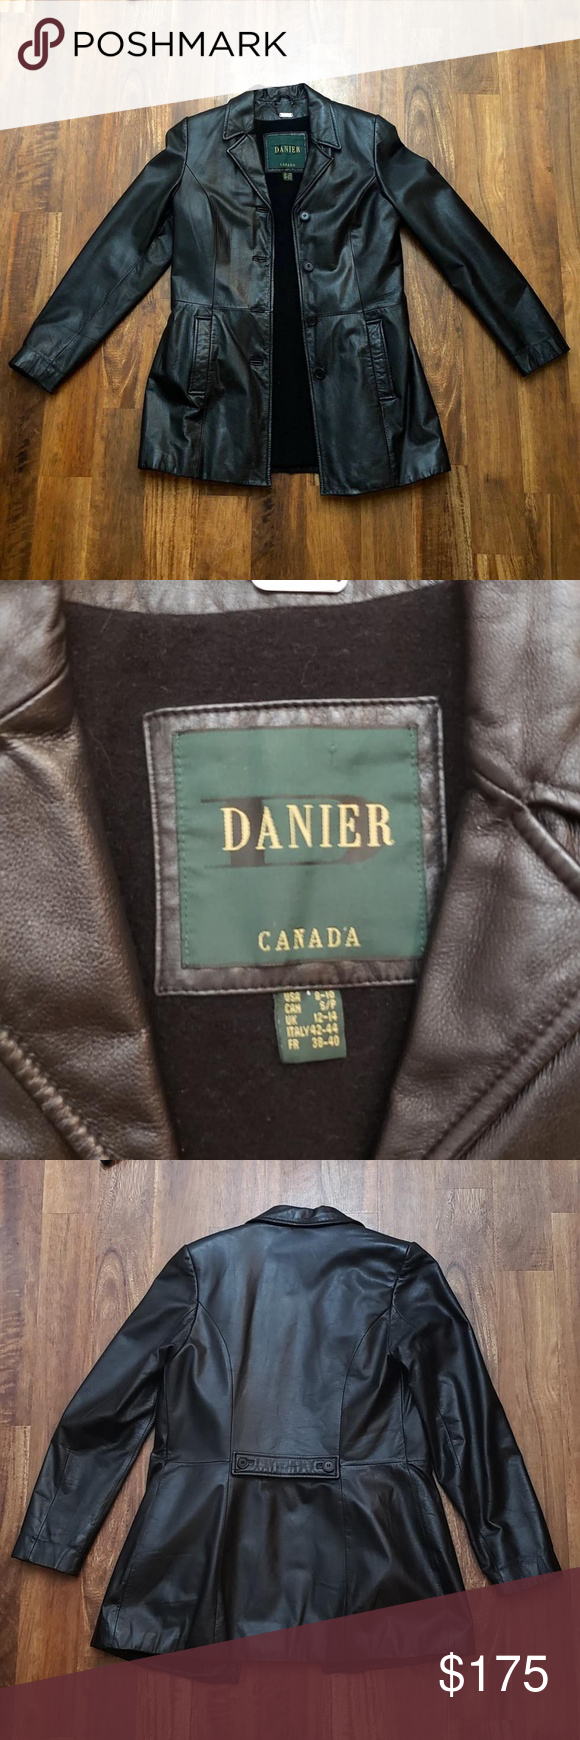 Vintage Danier Canada Leather Jacket Genuine Leather 80